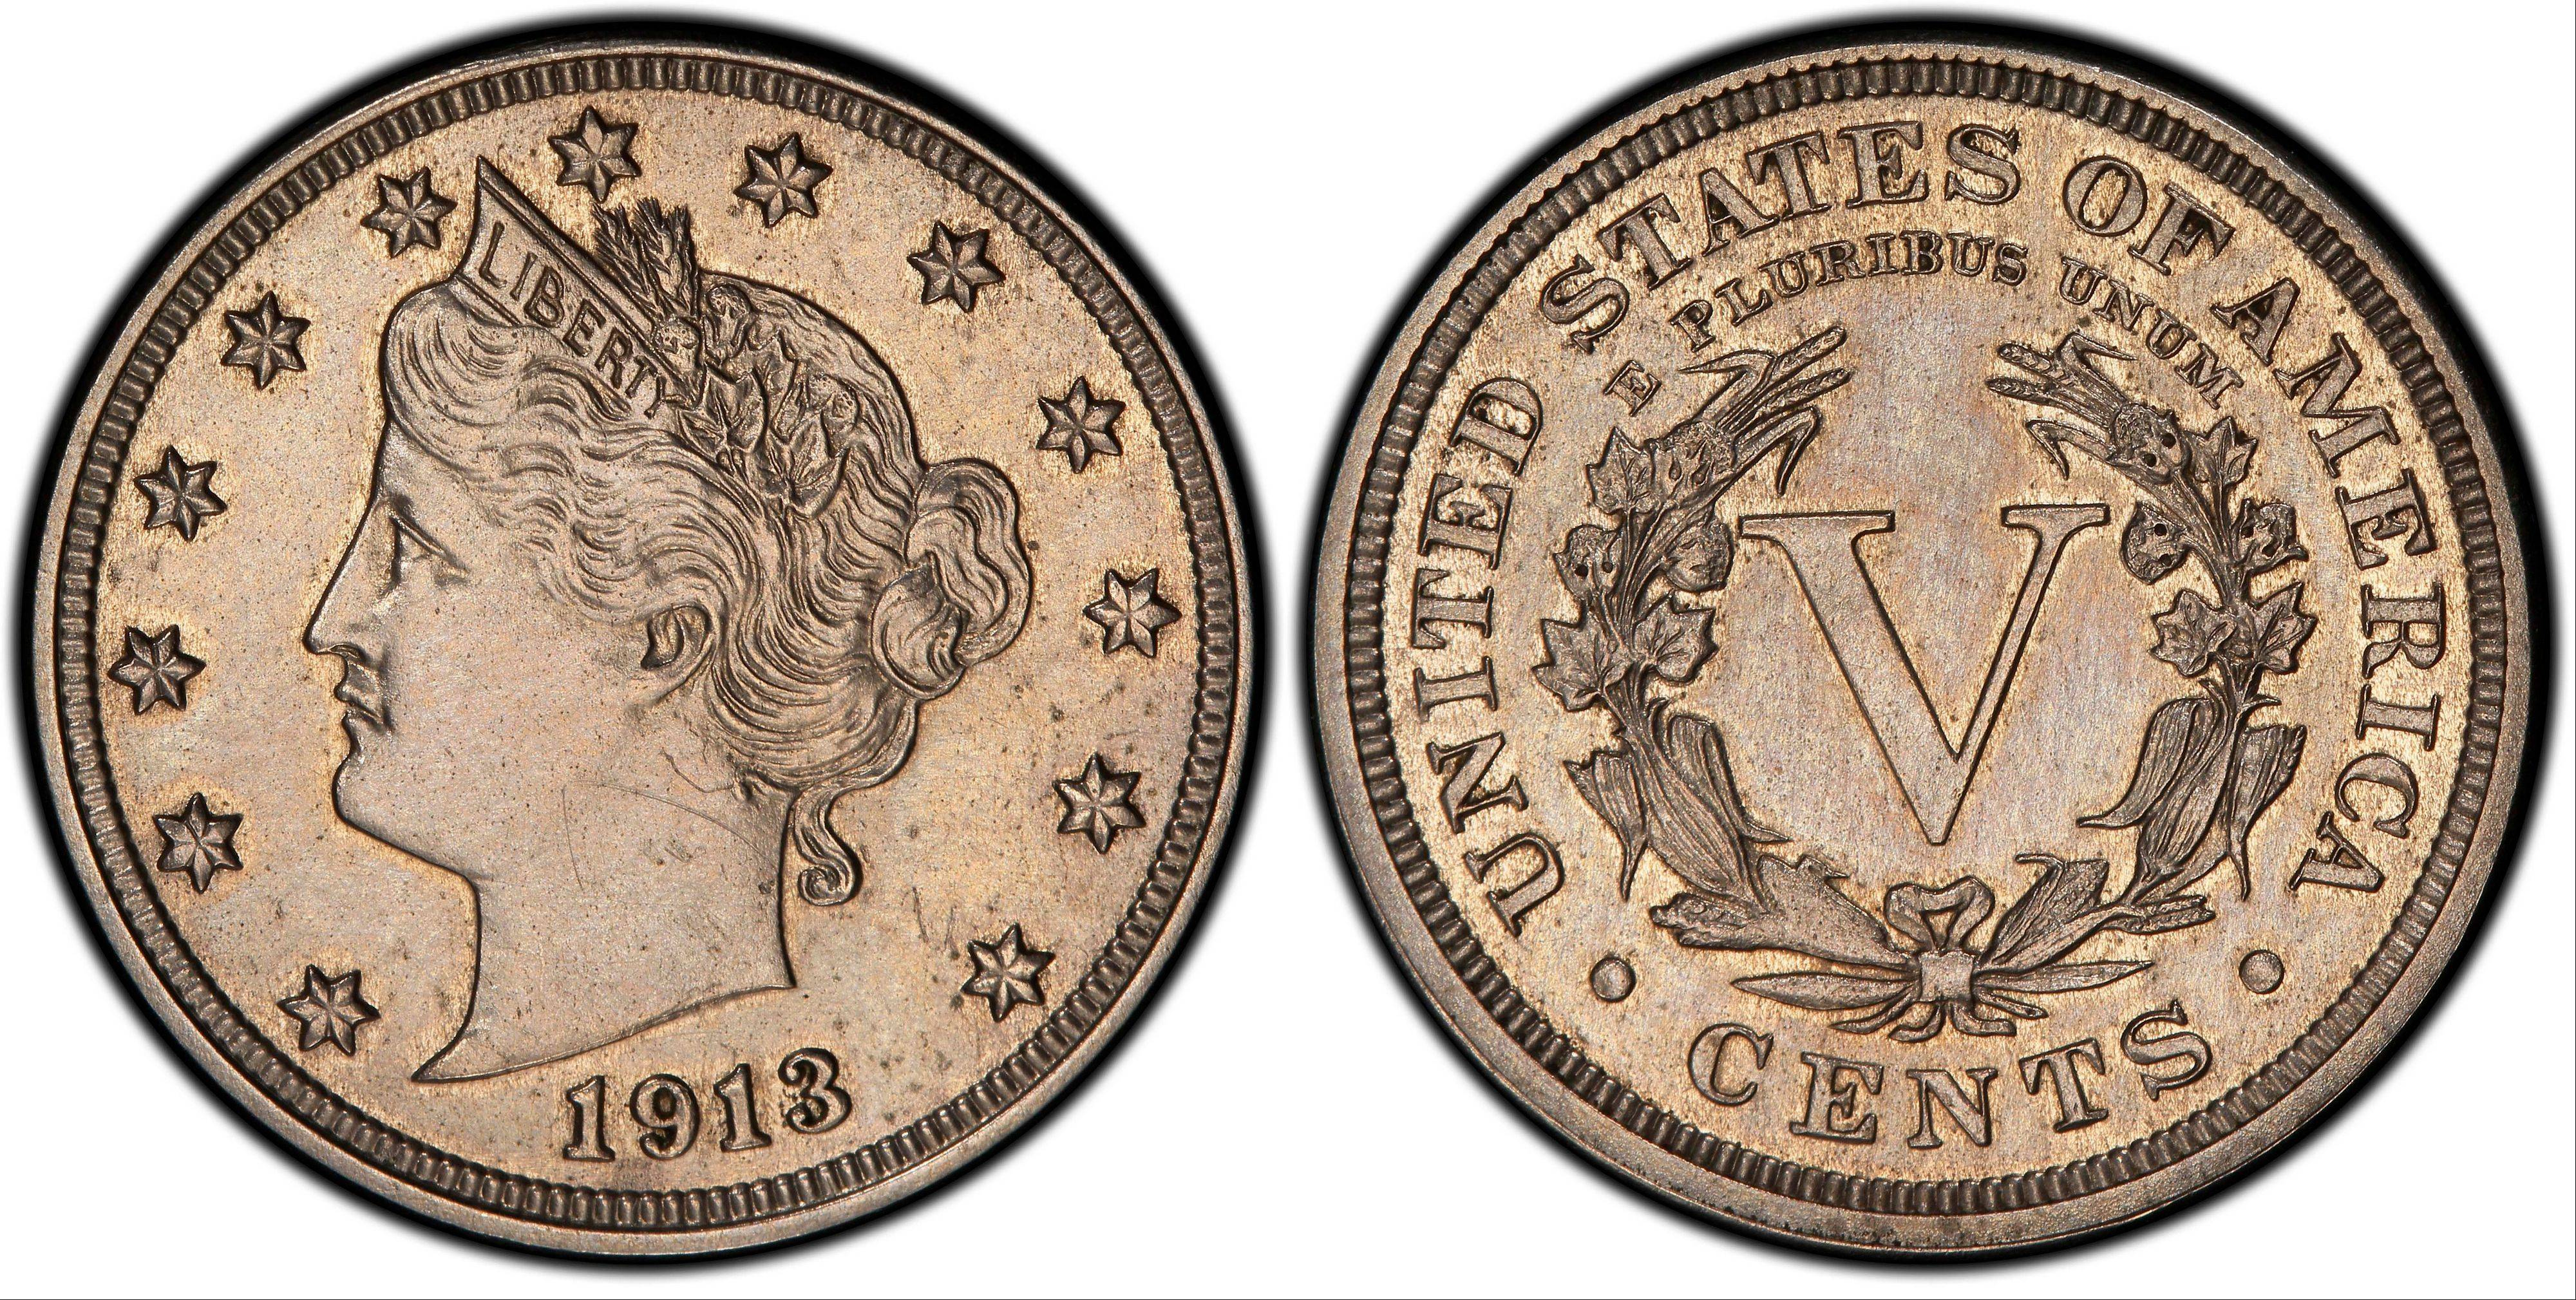 This image provided by Heritage Auctions shows an authentic 1913 Liberty Head nickel that was hidden in a Virginia closet for 41 years after its owners were mistakenly told it was a fake. The nickel is one of only five known and expected to sell for $2.5 million or more in an auction conducted by Heritage Auctions in Schaumburg on April 25.